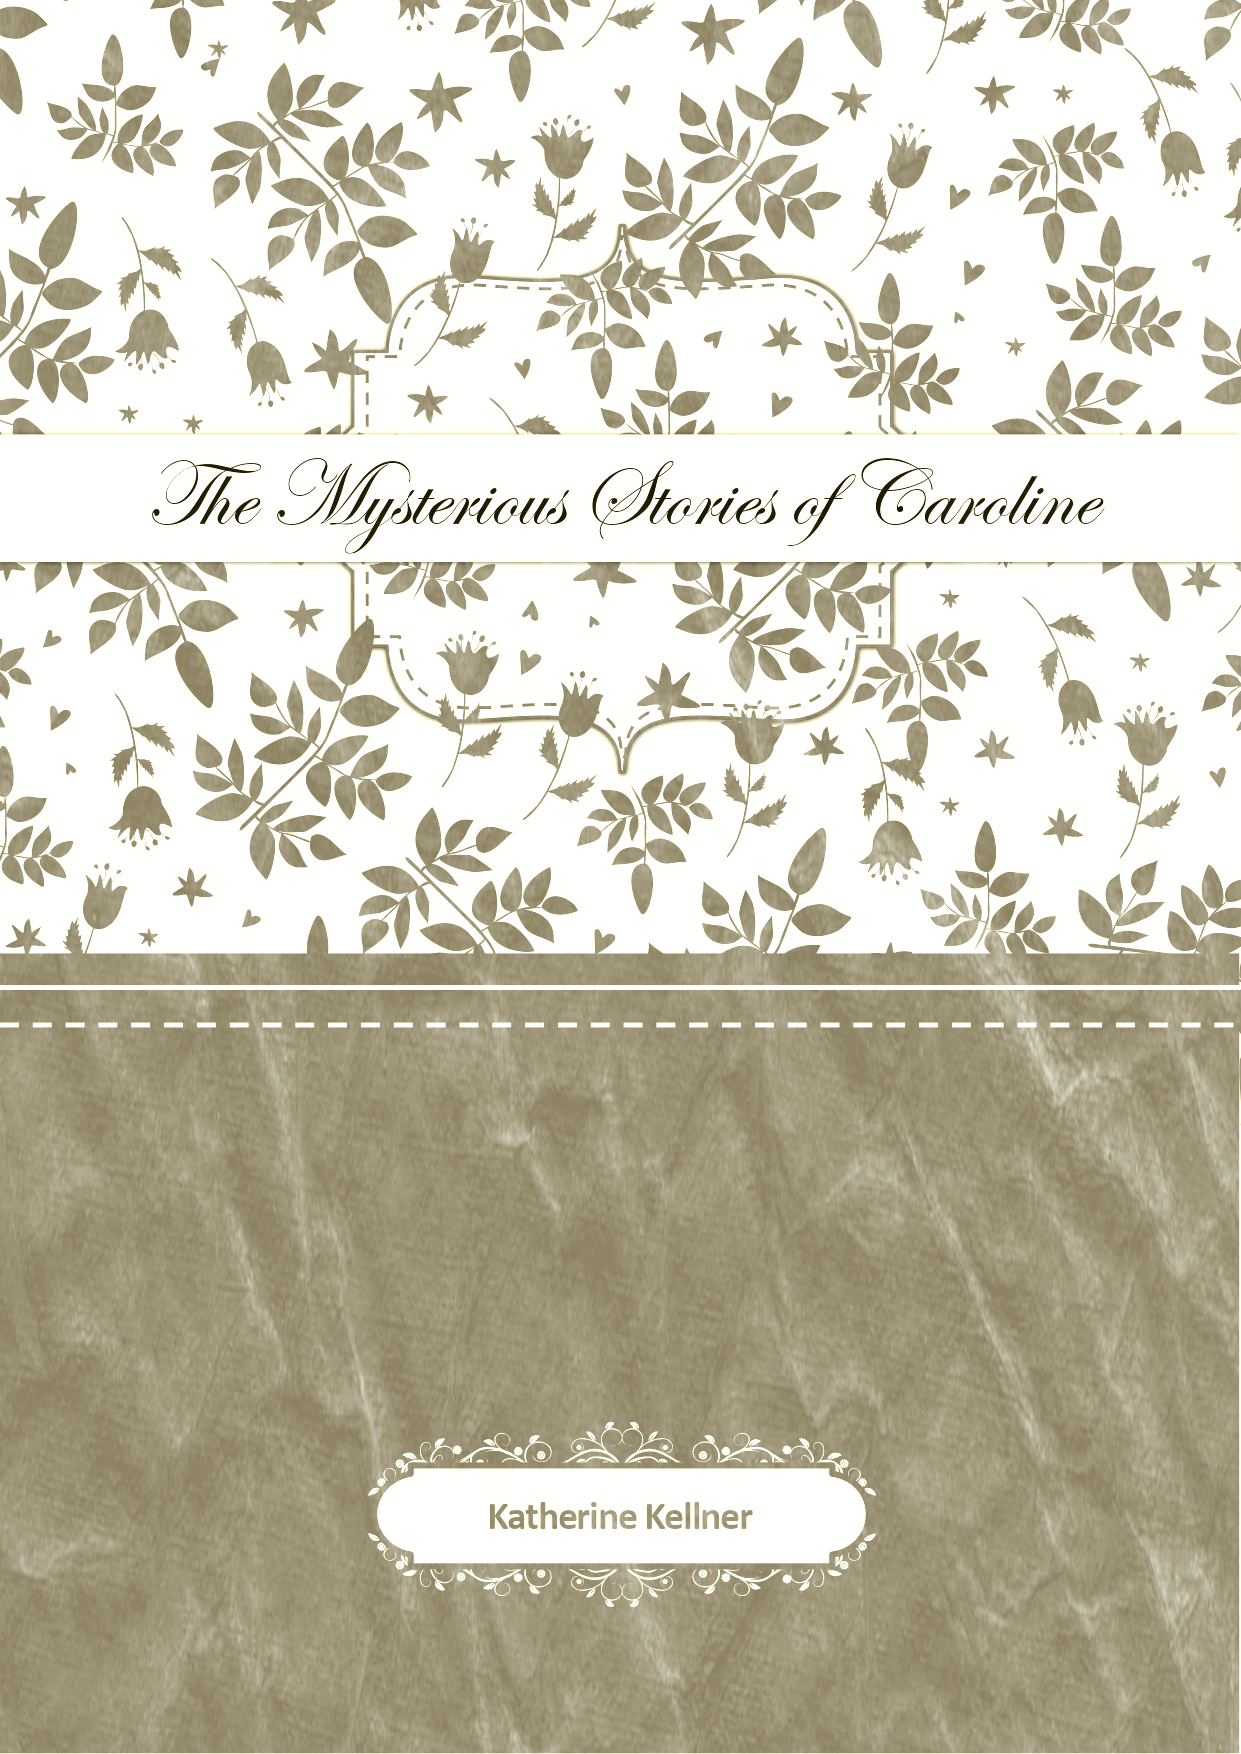 Cover art for The Mysterious Stories of Caroline